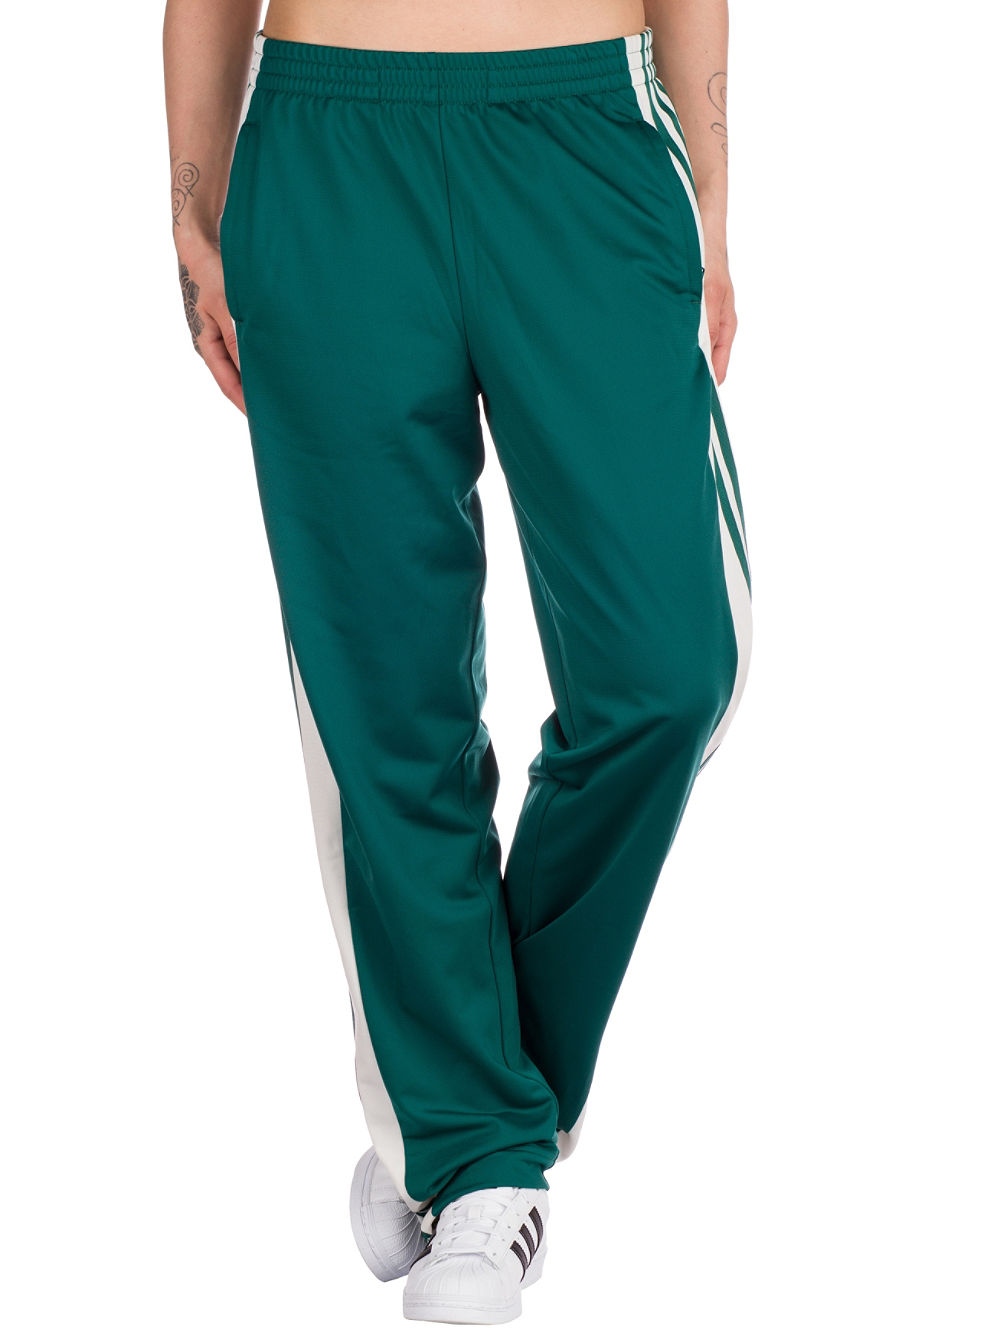 6468ecc894958 Buy adidas Originals Adibreak Track Jogging Pants online at Blue Tomato